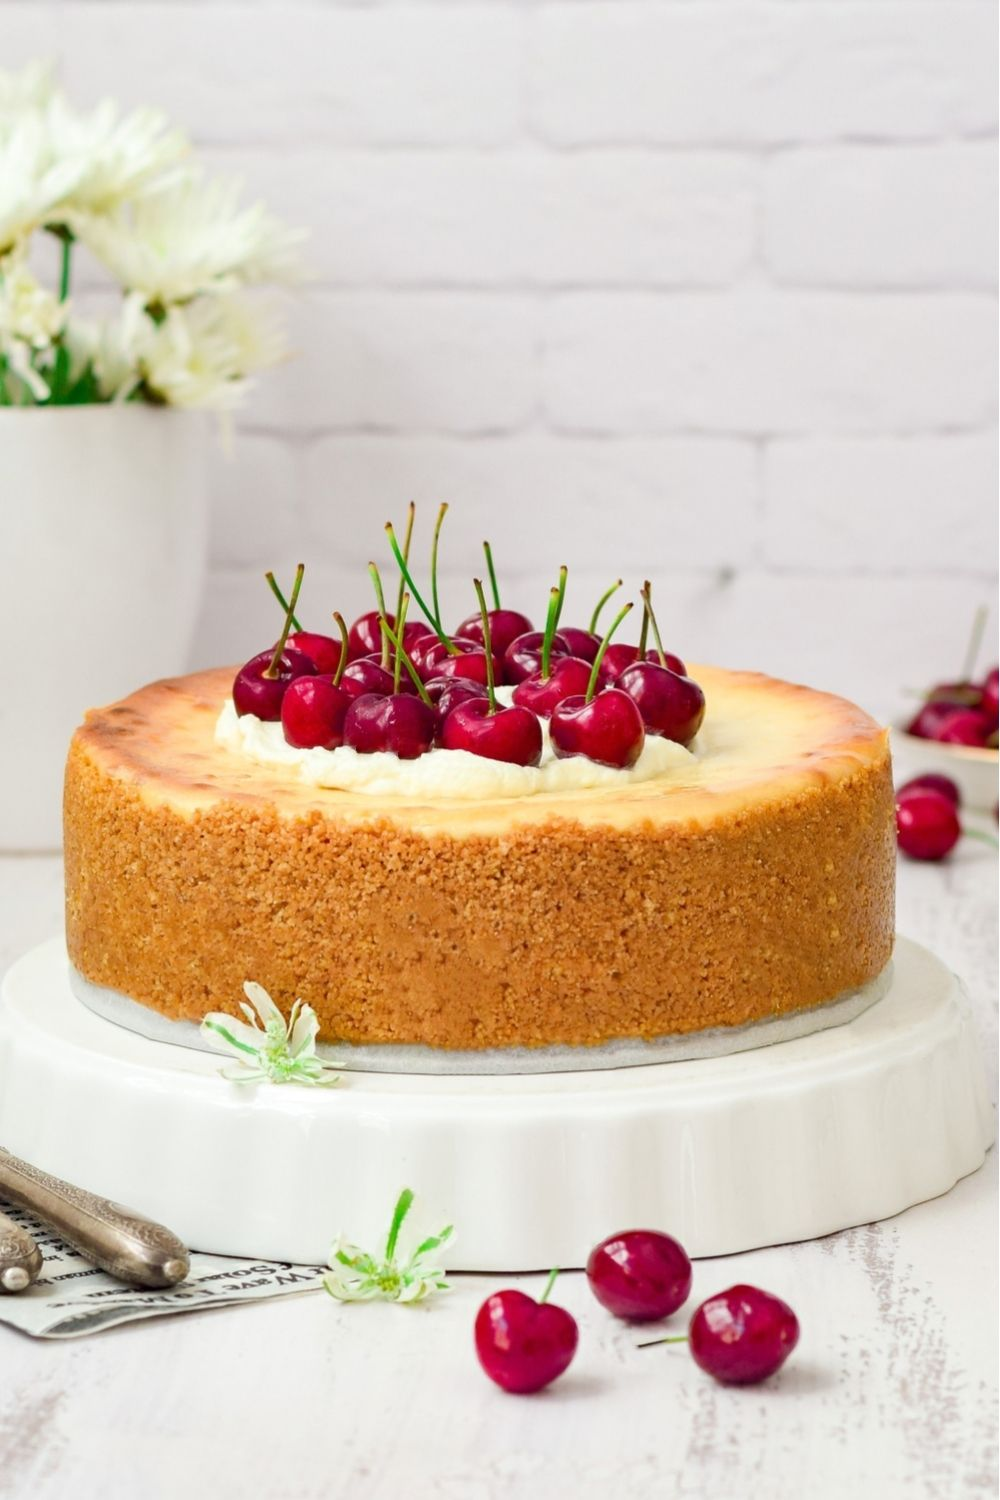 Baked white cheesecake decoarated with cherries on a white dish